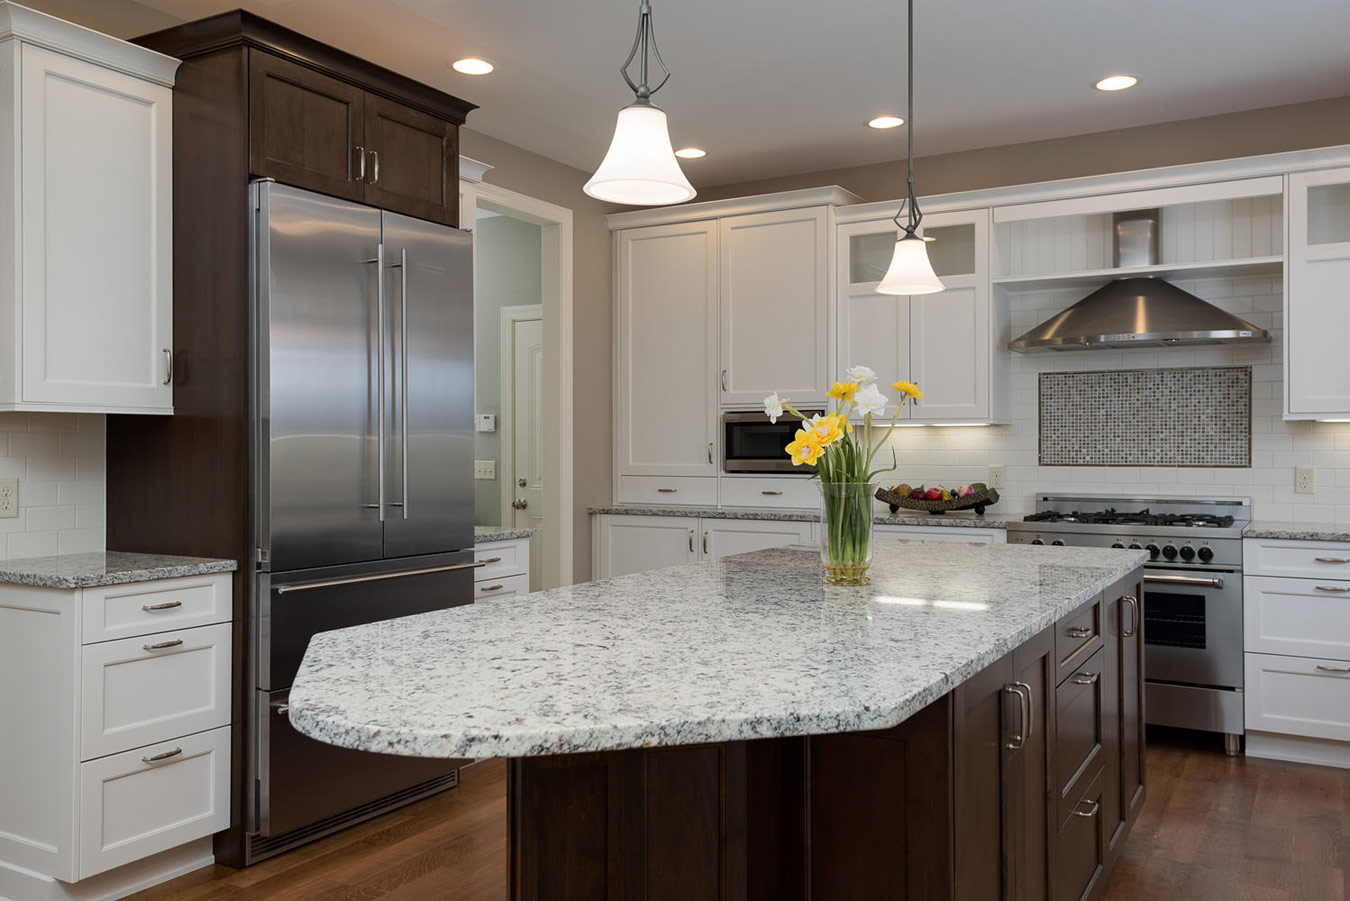 Time to Build Your New Home and Dream Kitchen in Rochester NY